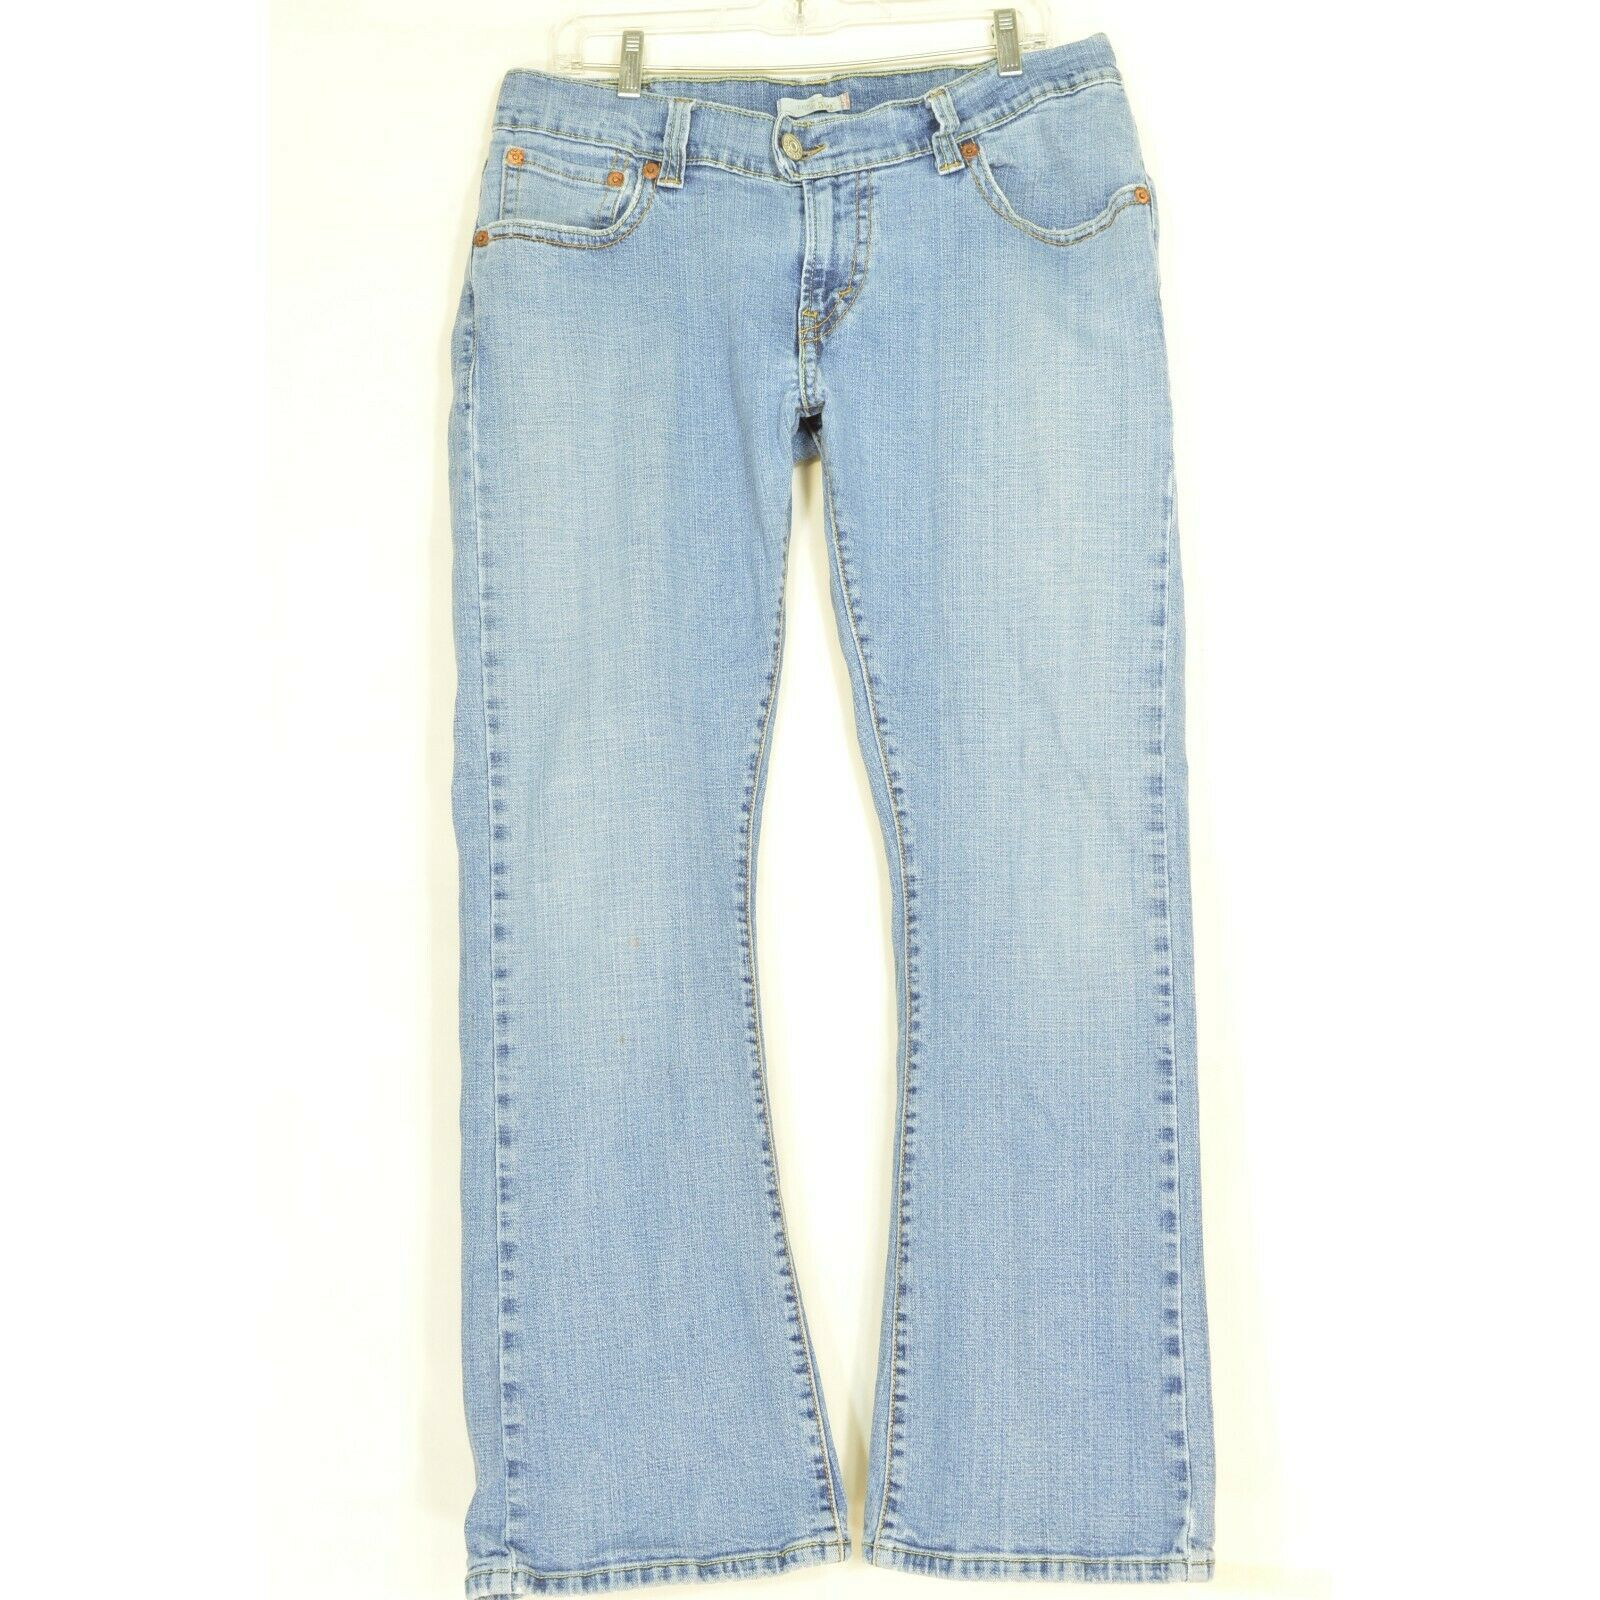 Primary image for Levi 542 jeans 16 x 31 low slouch flap back pockets flare twisted leg 504 style